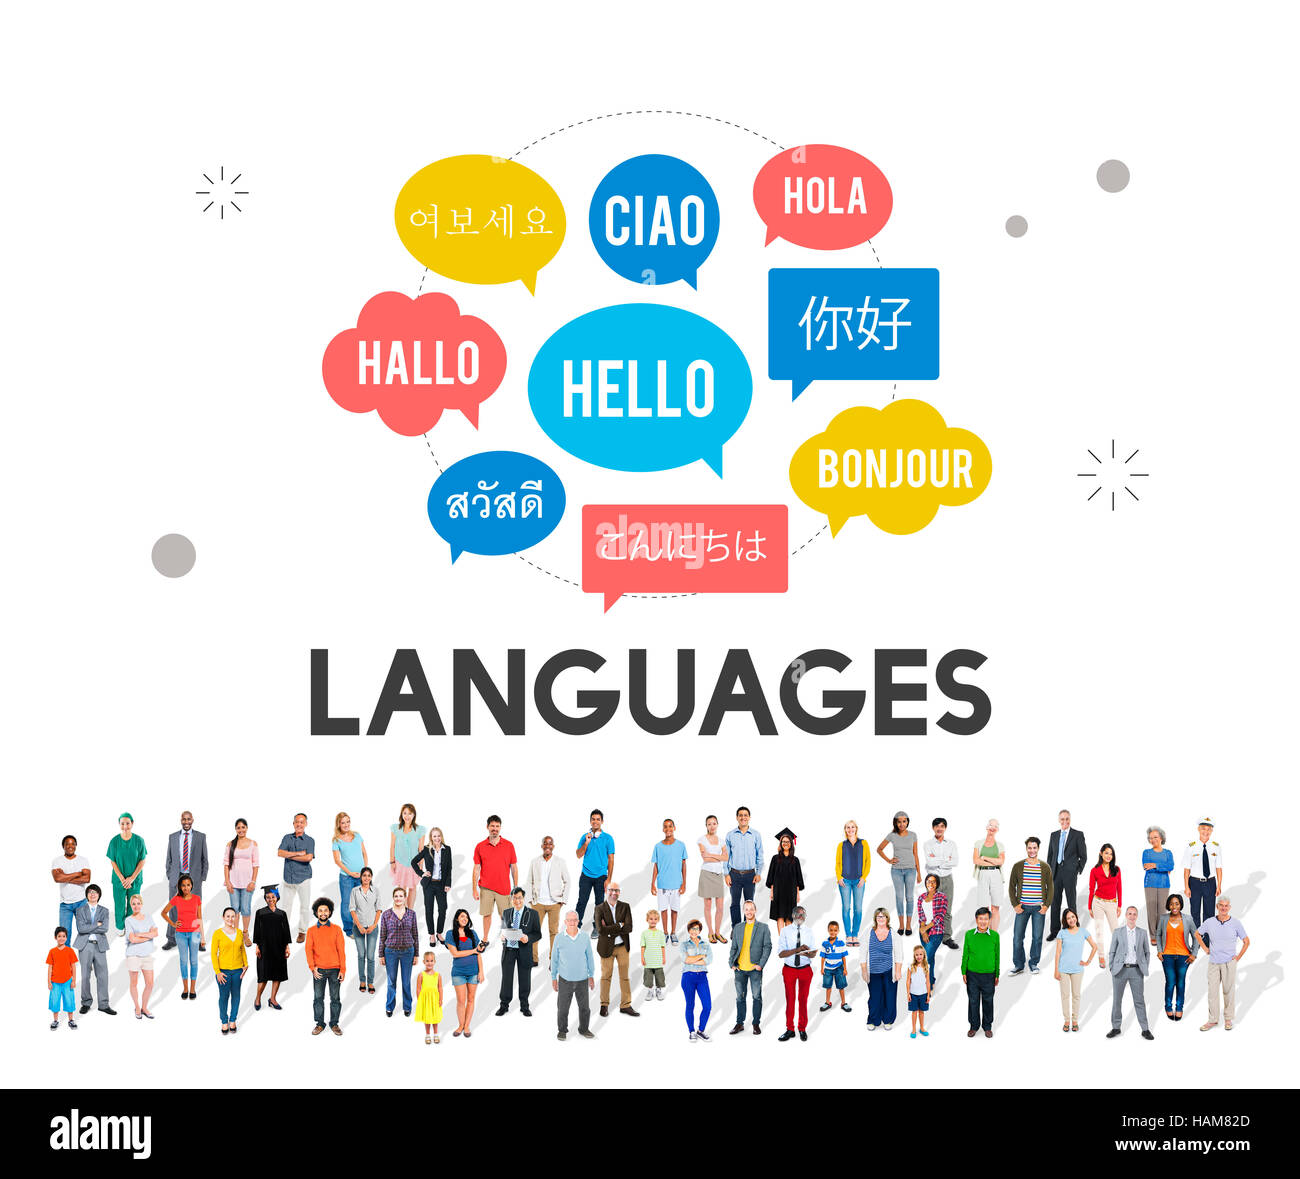 African languages stock photos african languages stock images alamy multilingual greetings languages concept stock image m4hsunfo